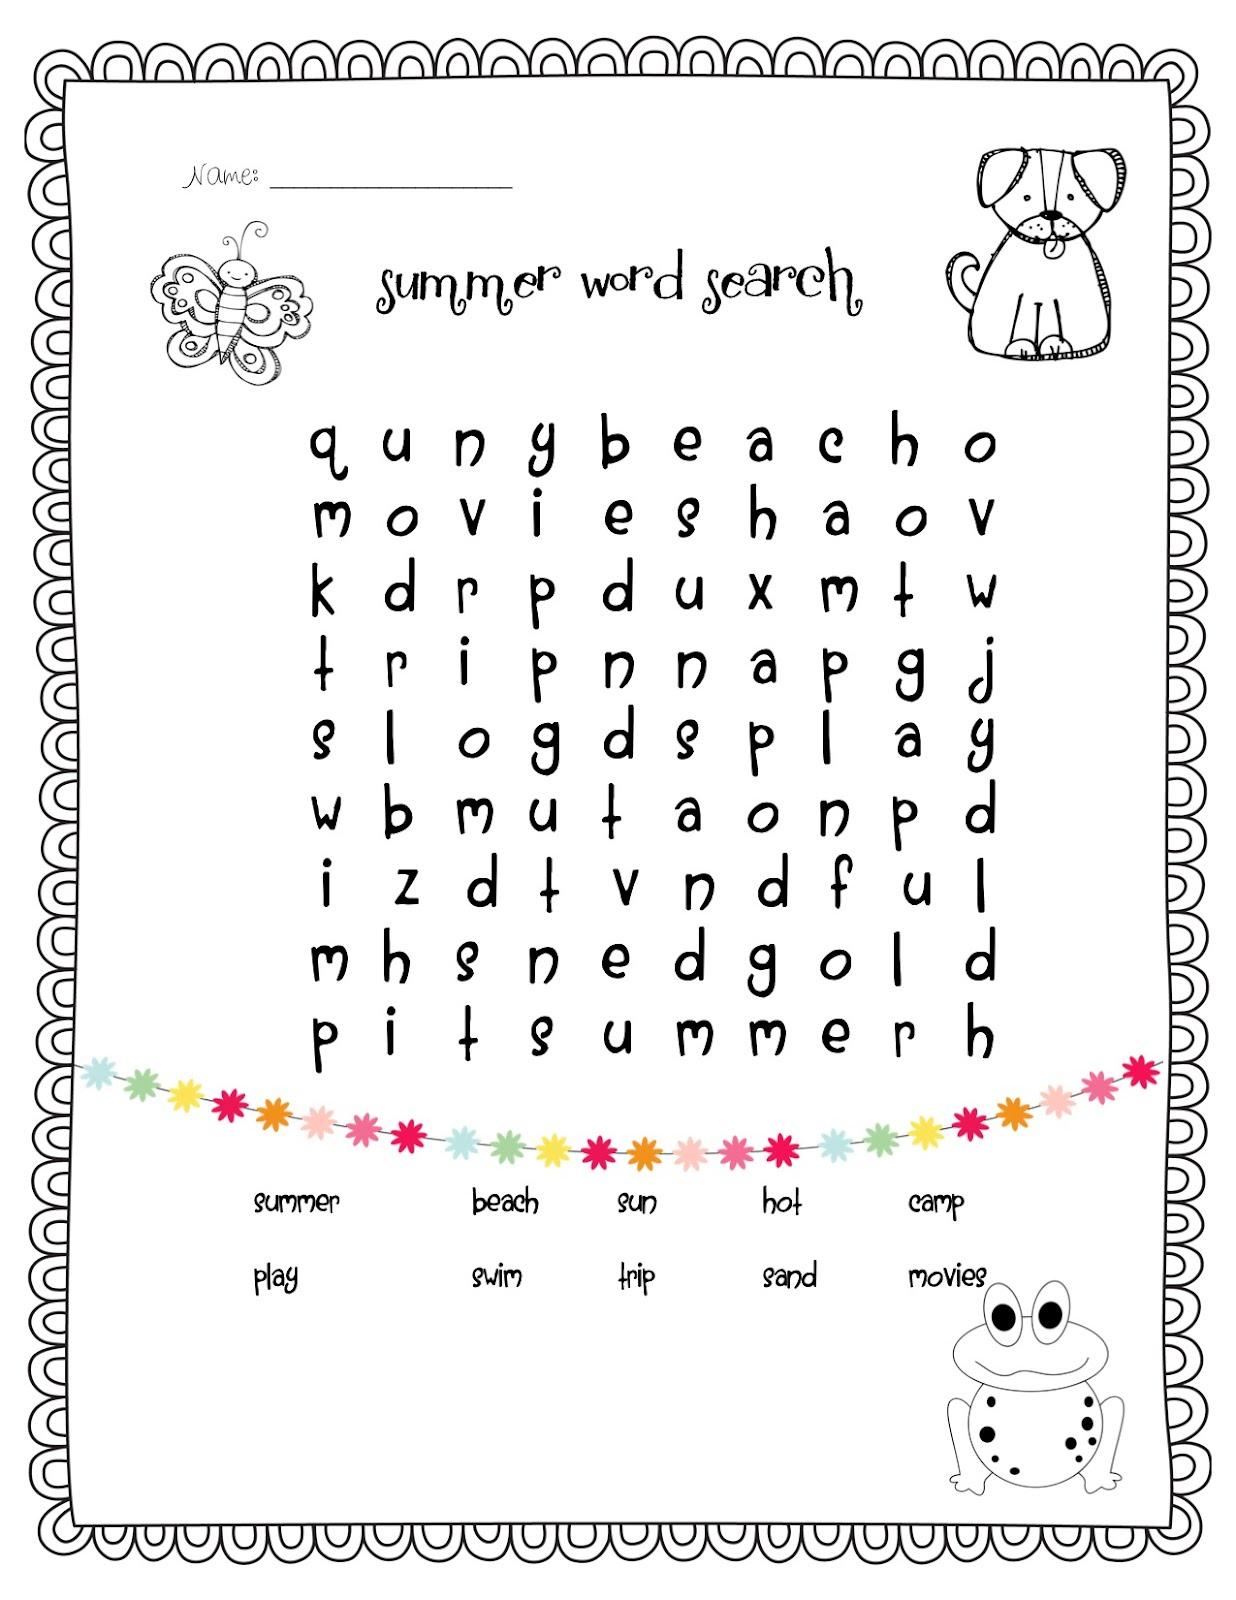 1St Grade Word Search - Best Coloring Pages For Kids